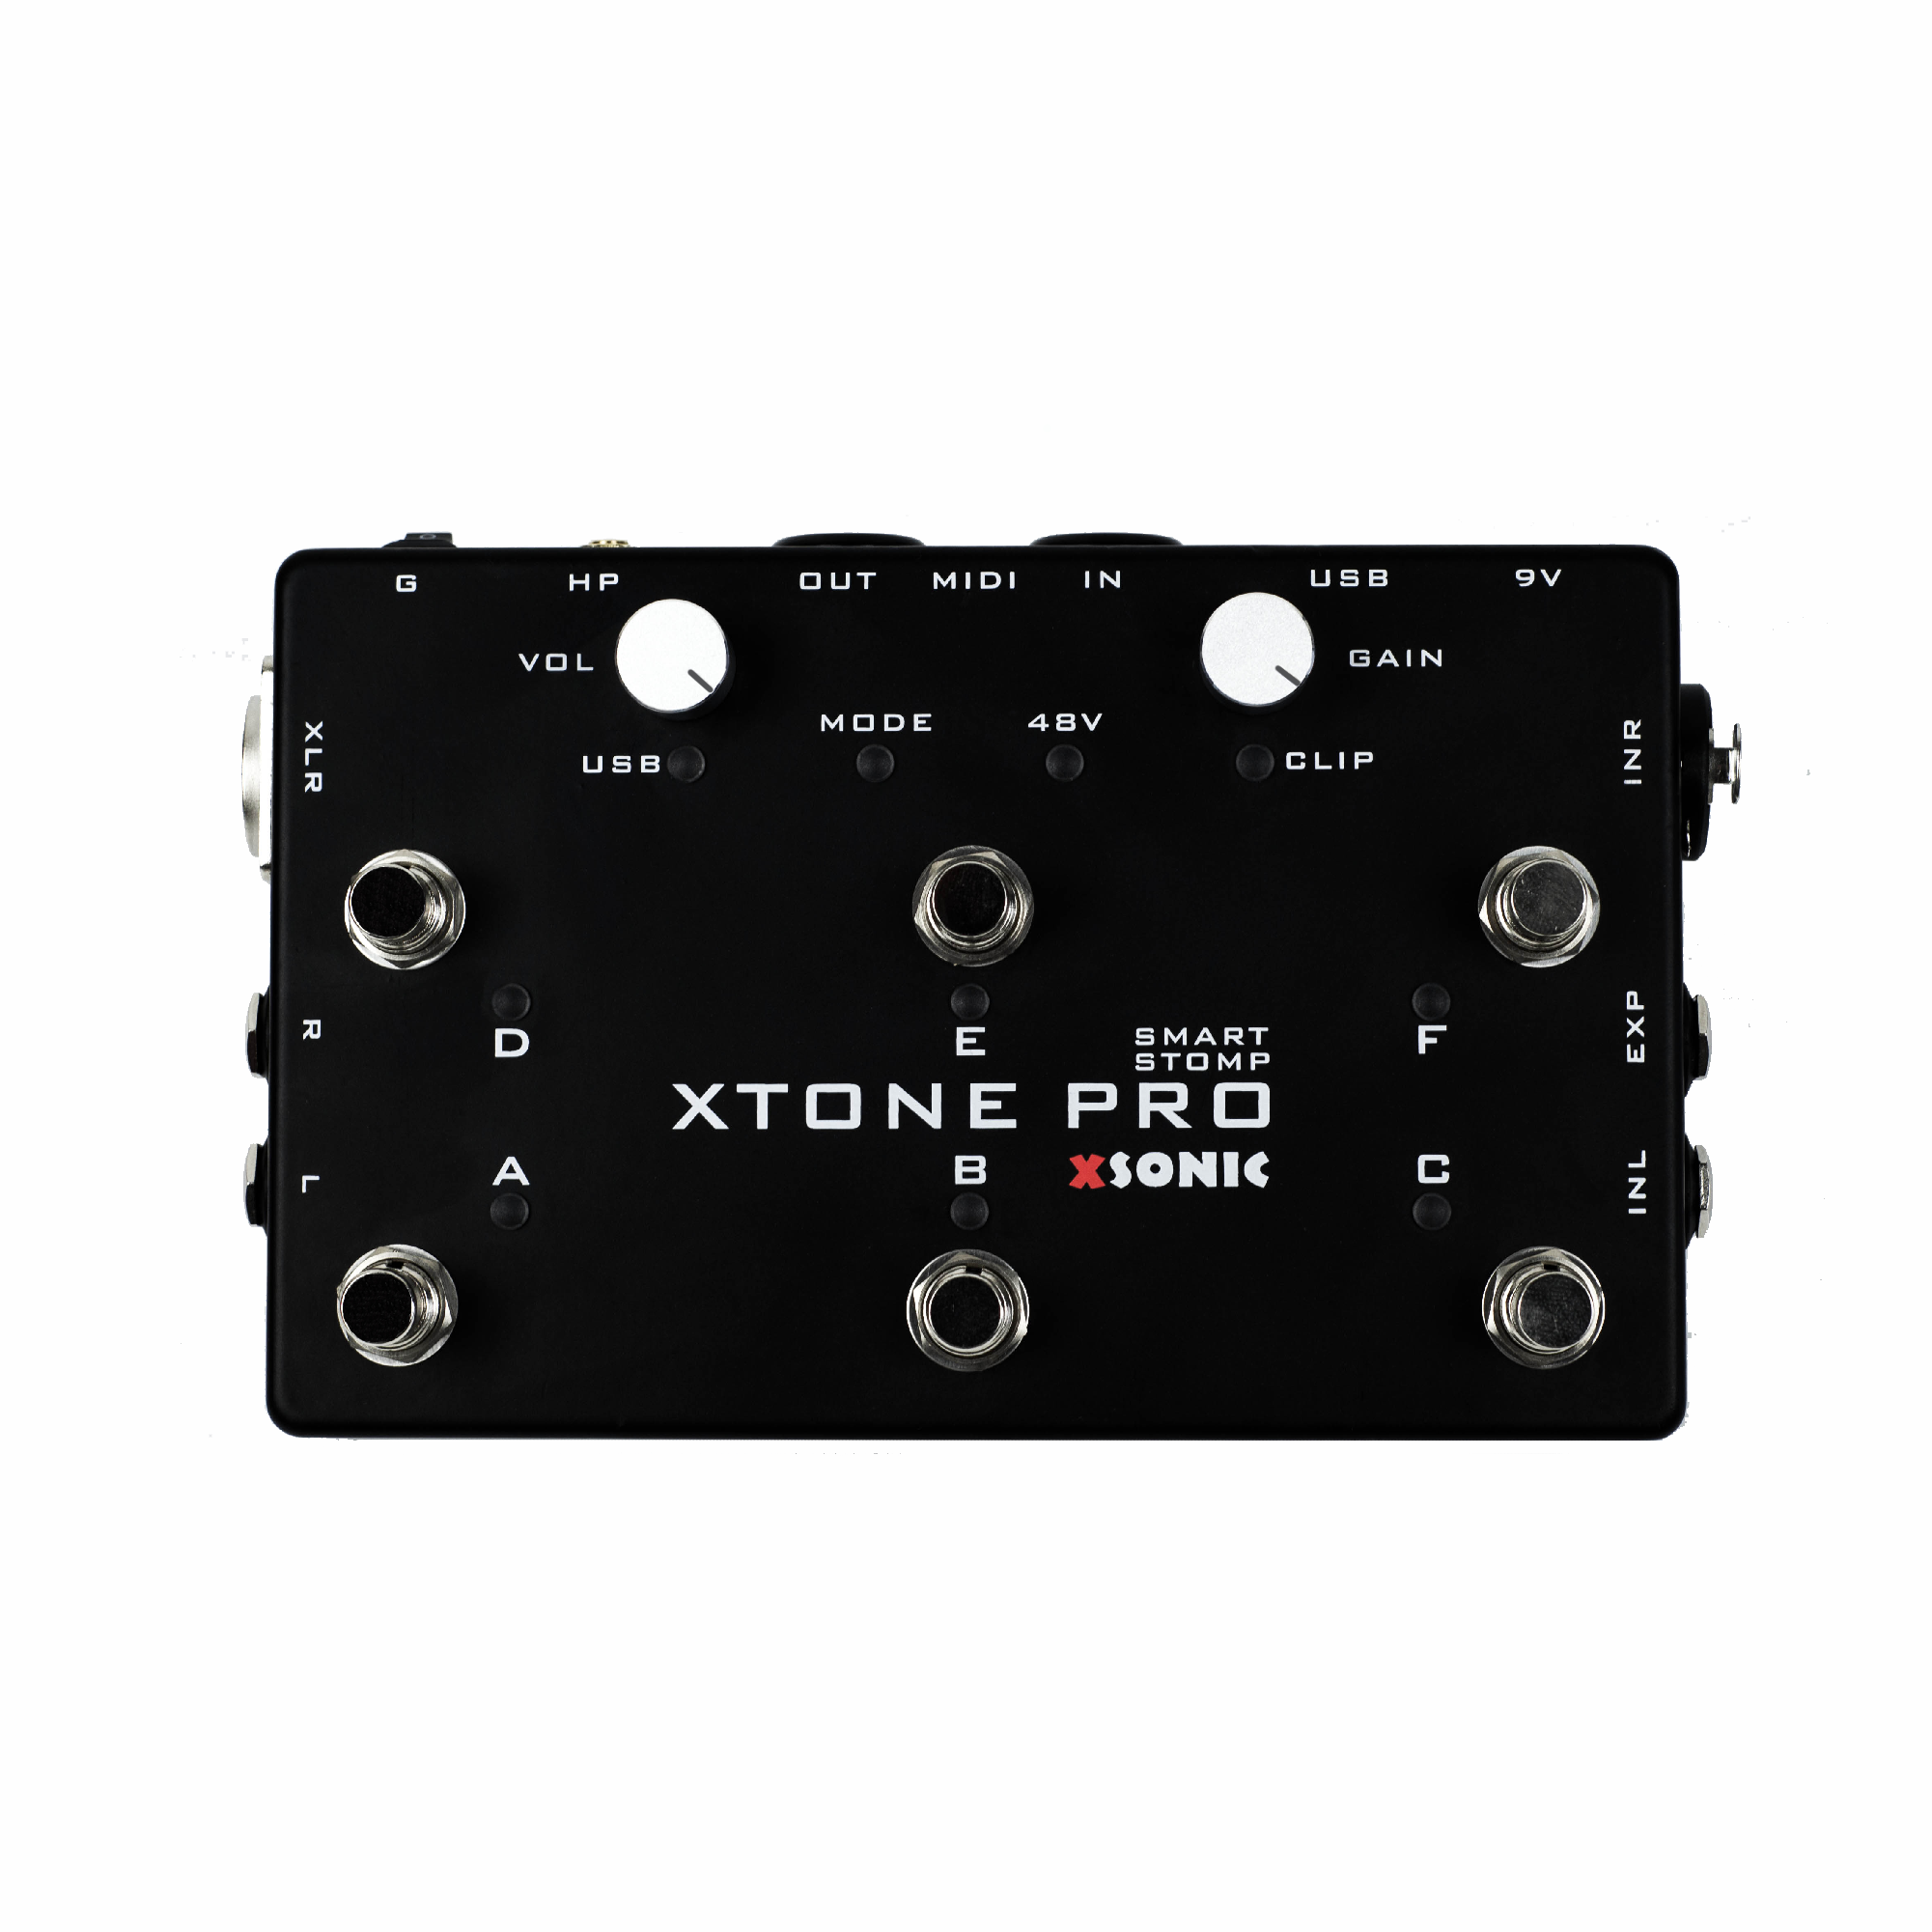 XTONE Pro | Professional Smart Audio Interface